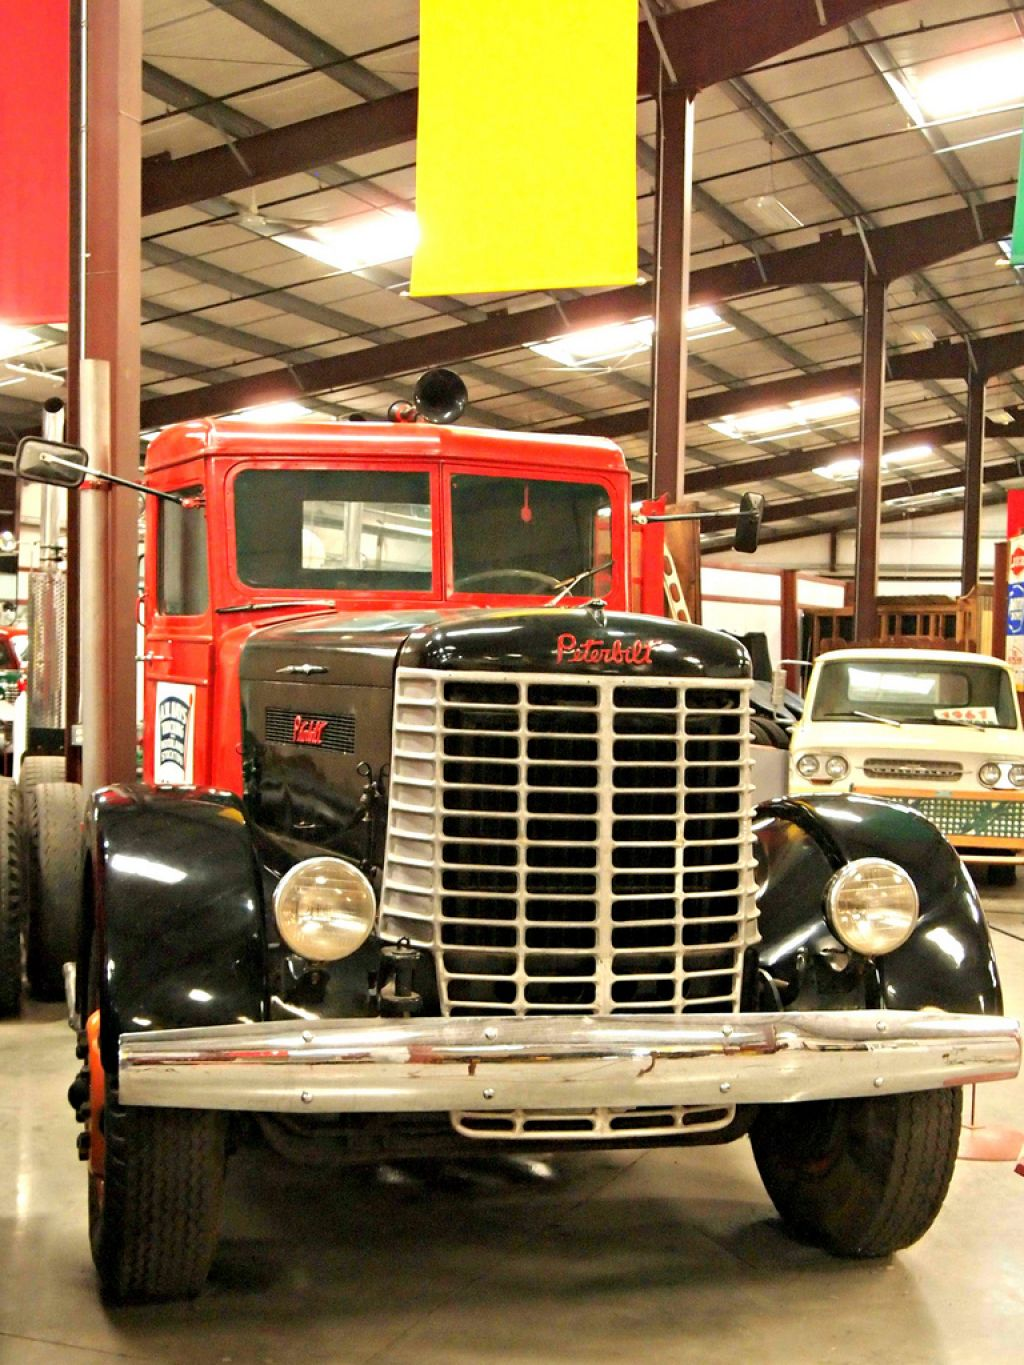 classic trucks14 Classic Trucks in Hays Antique Museum, California